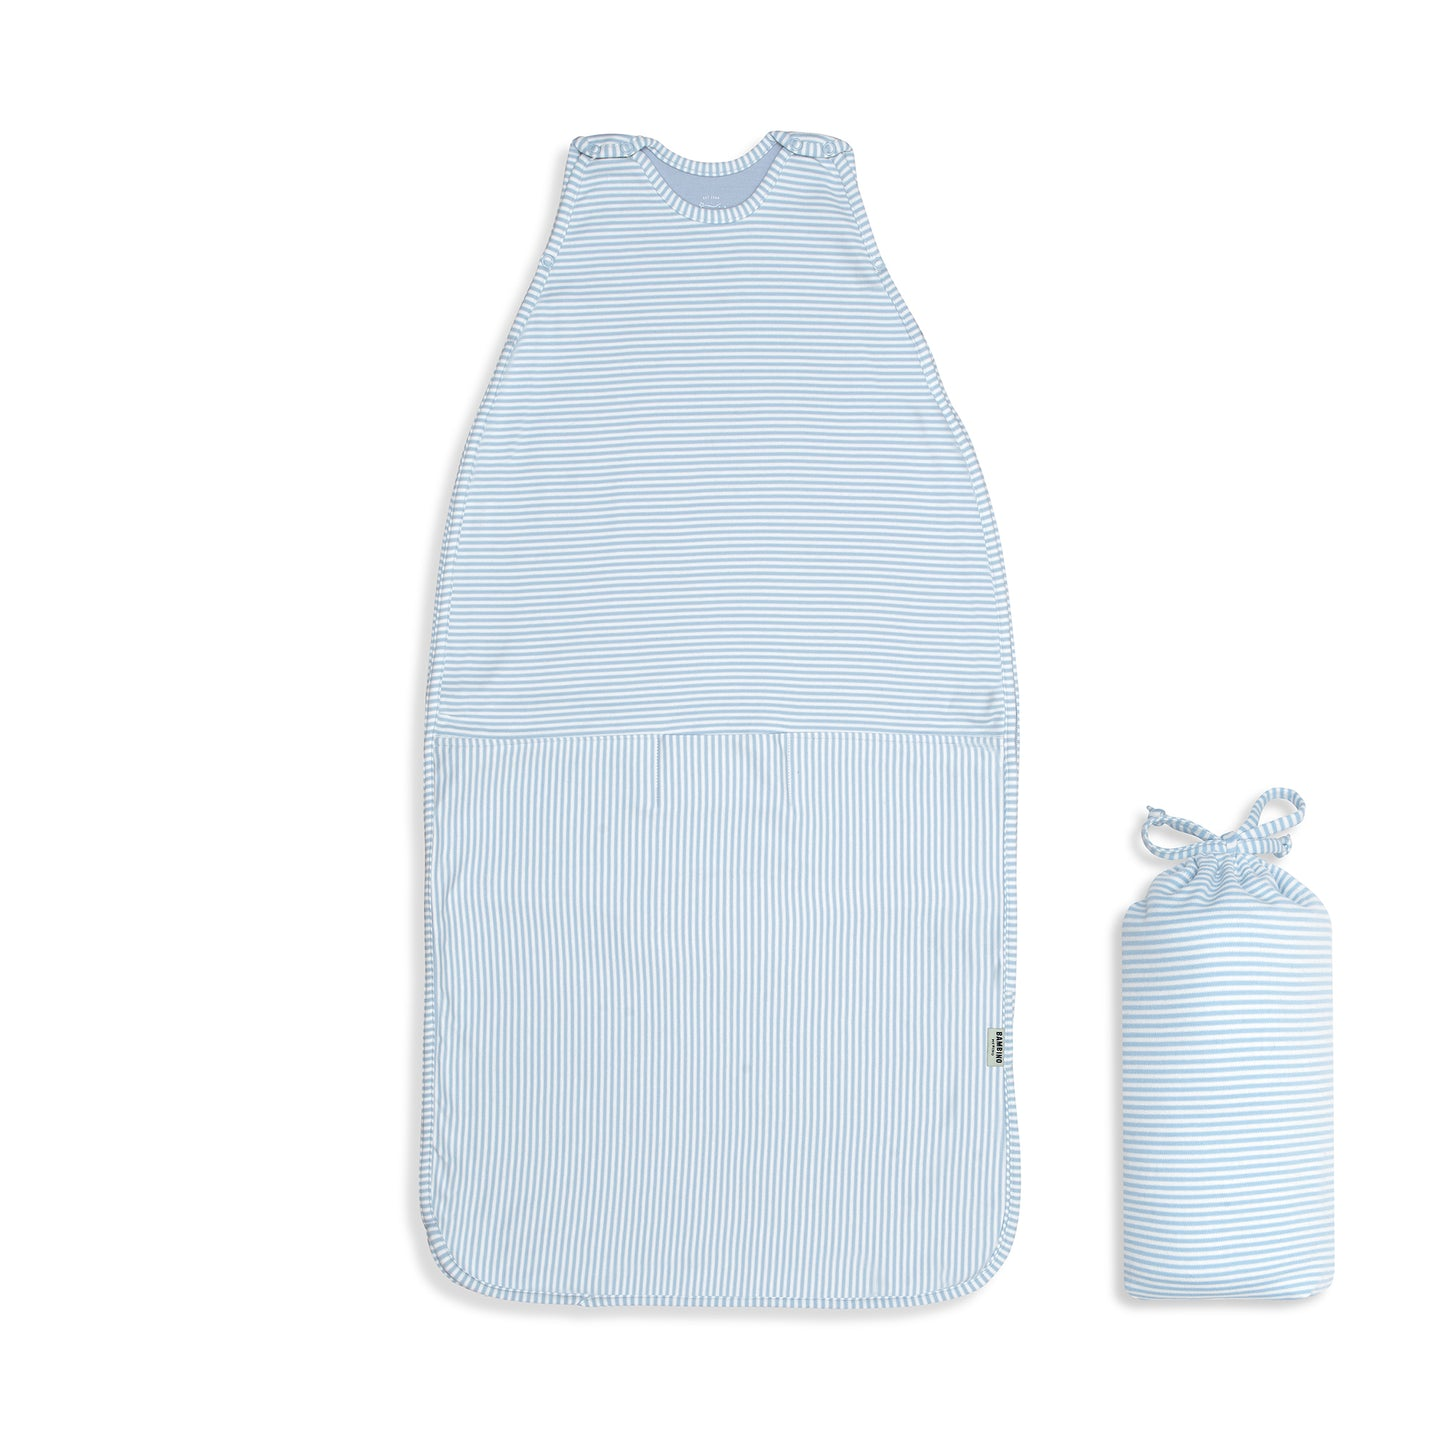 'Cooler Nights' Sleeping Bag - Sky Blue Stripe